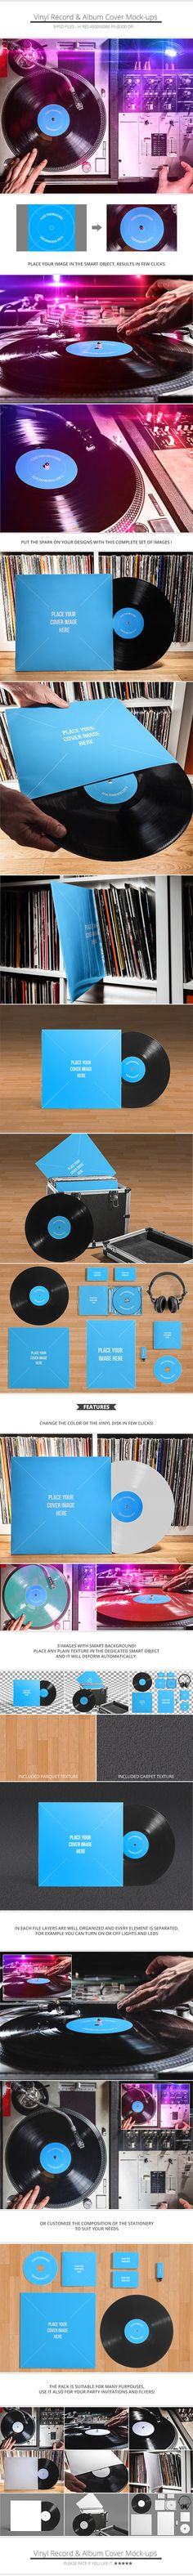 Vinyl Record & Album Cover Mockups with Free iTunes PSD on Behance